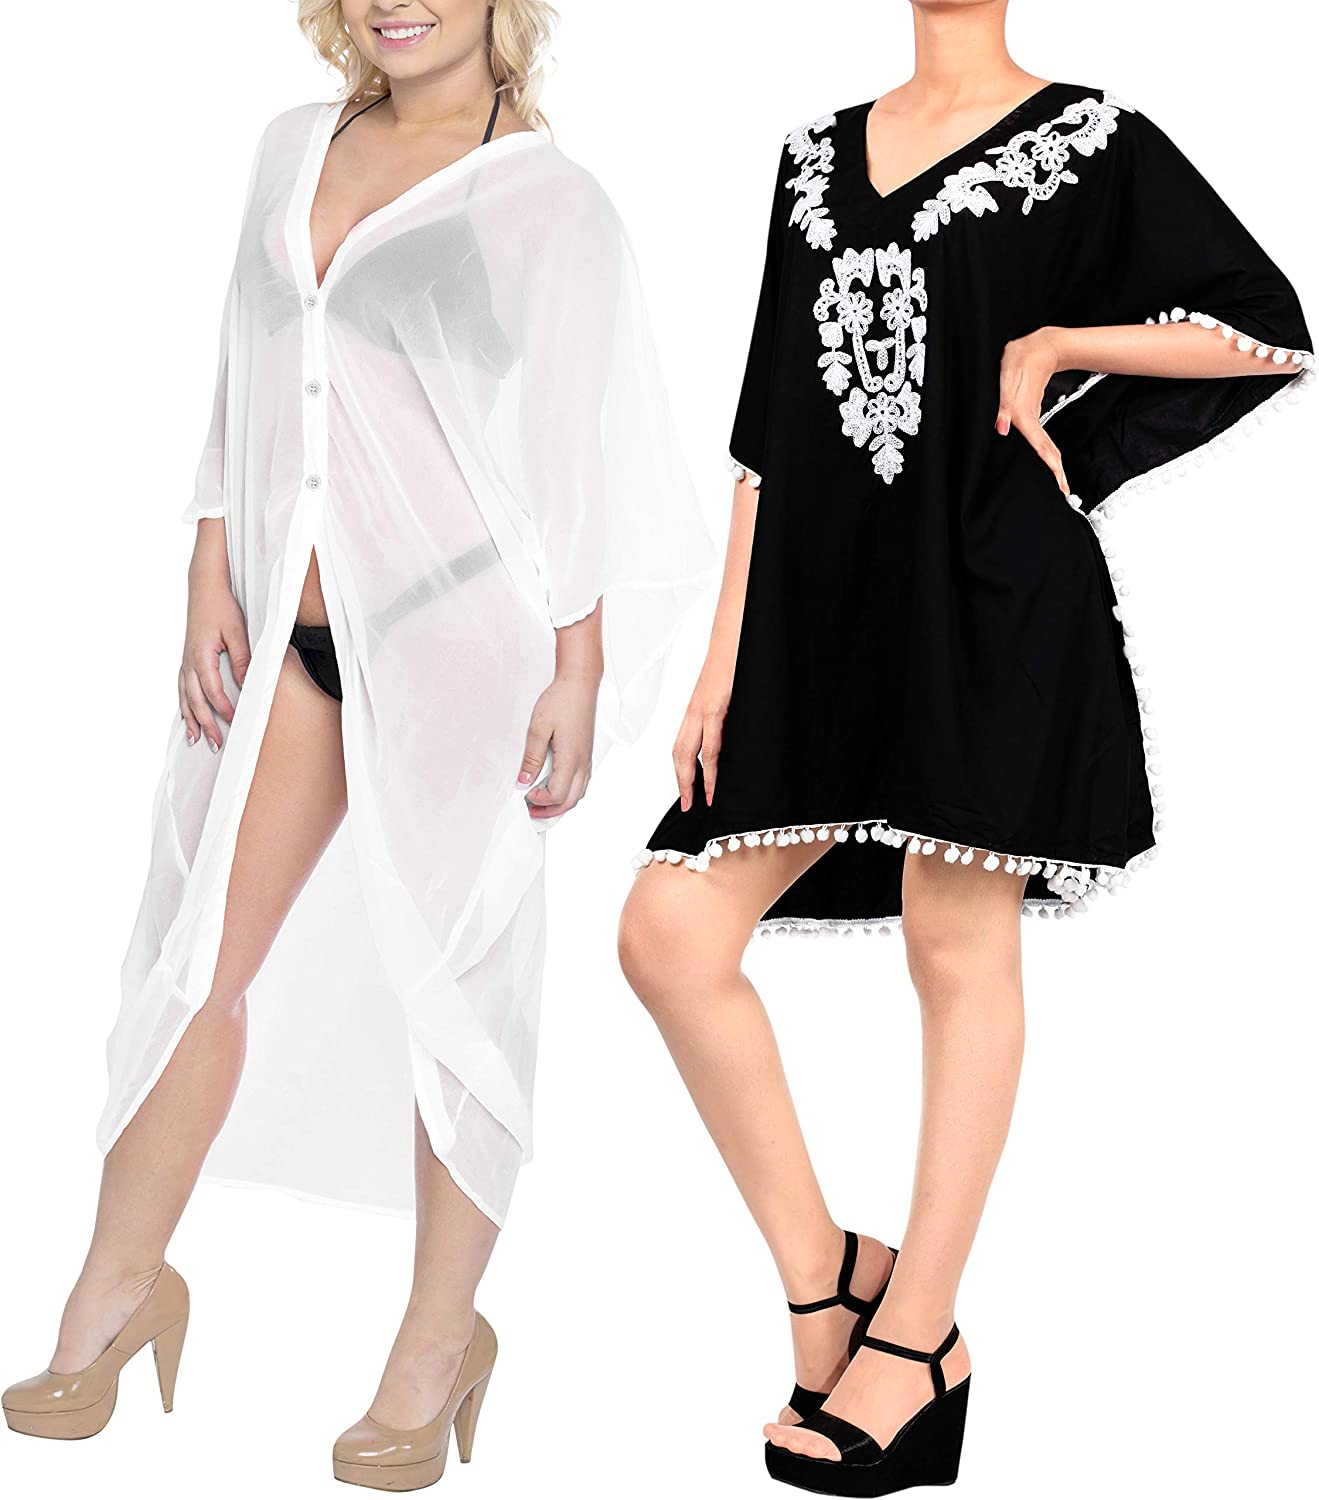 LA LEELA Women's Plus Size Kimono Cardigan Swim Cover Ups Cardigan Beach Cover up Casual Dress Work from Home Clothes Women Pack of 2